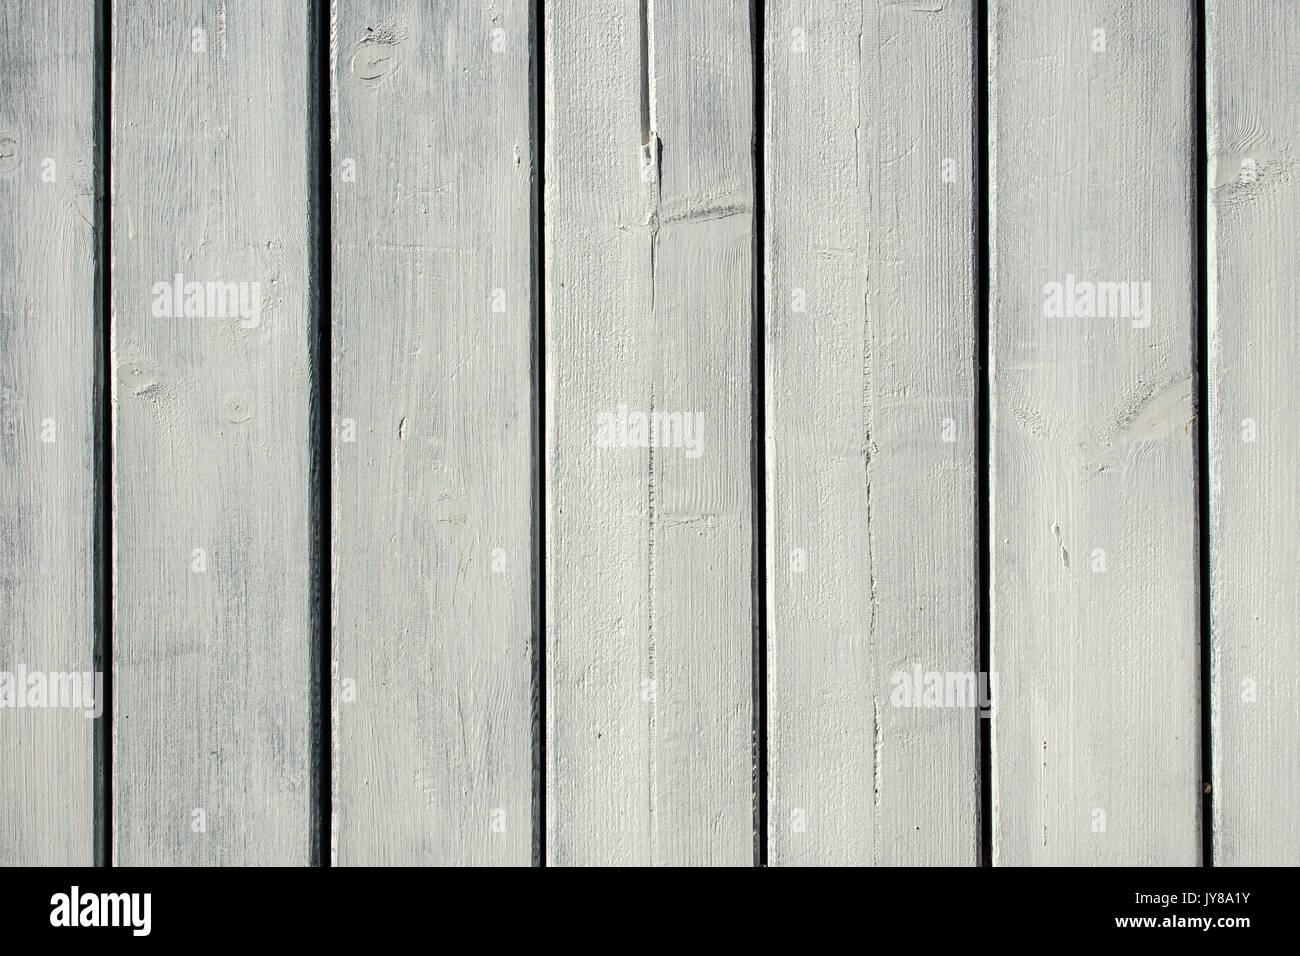 Whitewash painted wooden panel strips. - Stock Image